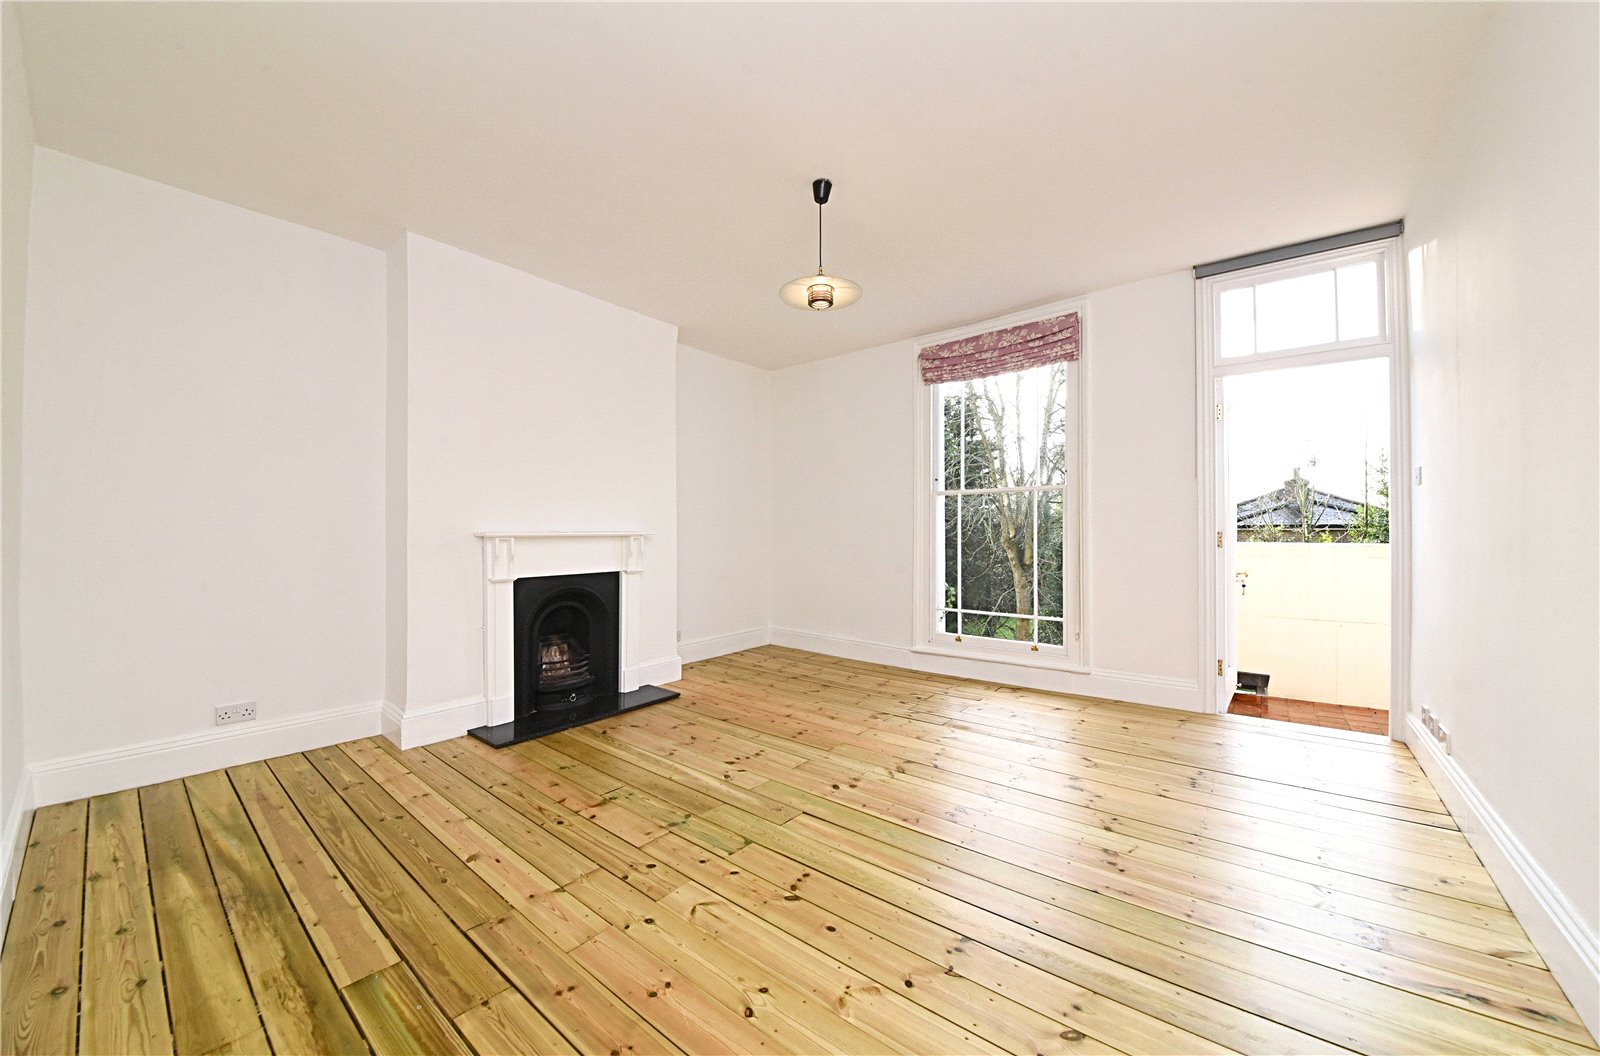 3 bed apartment to rent in Wood Street, High Barnet - Property Image 1